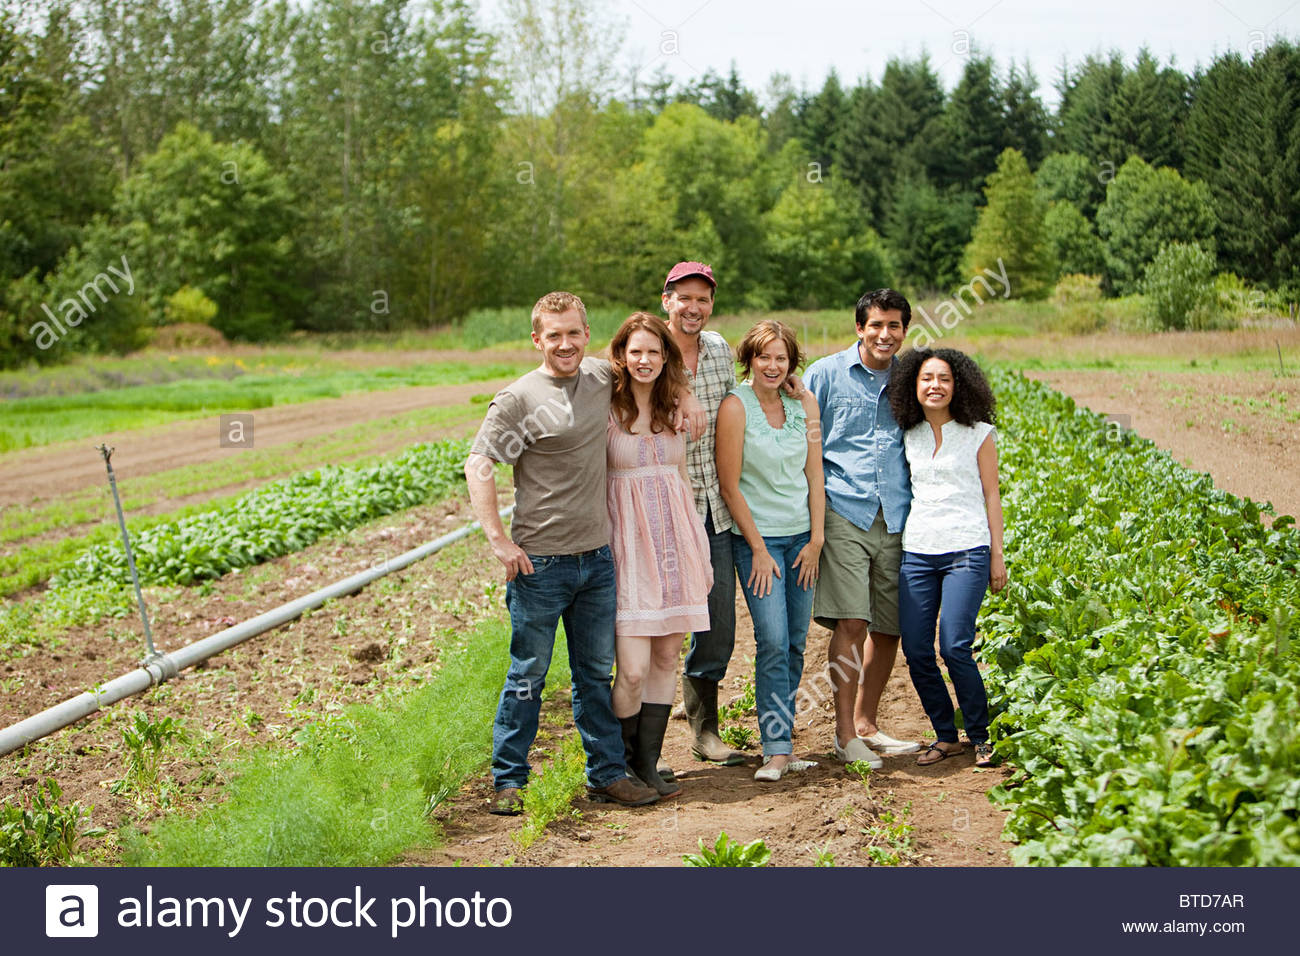 Group of people in vegetable field on farm - Stock Image